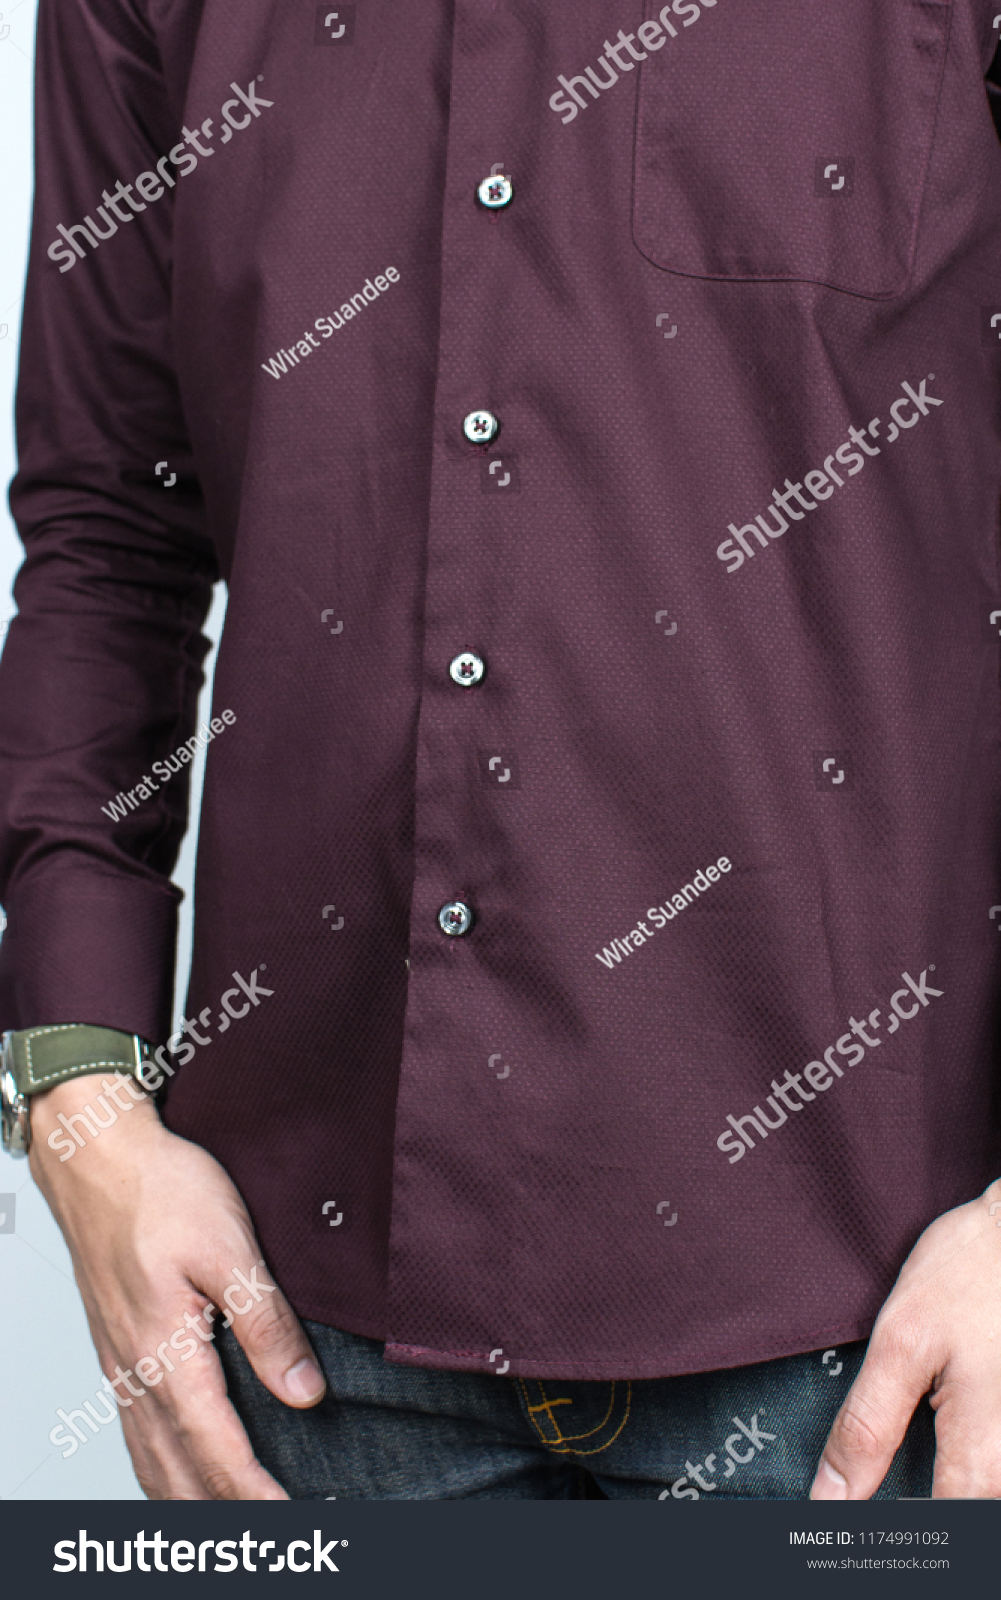 bc86dc6176563 Stock photo shirt design model of men shirts set people concept closeup of  young man in